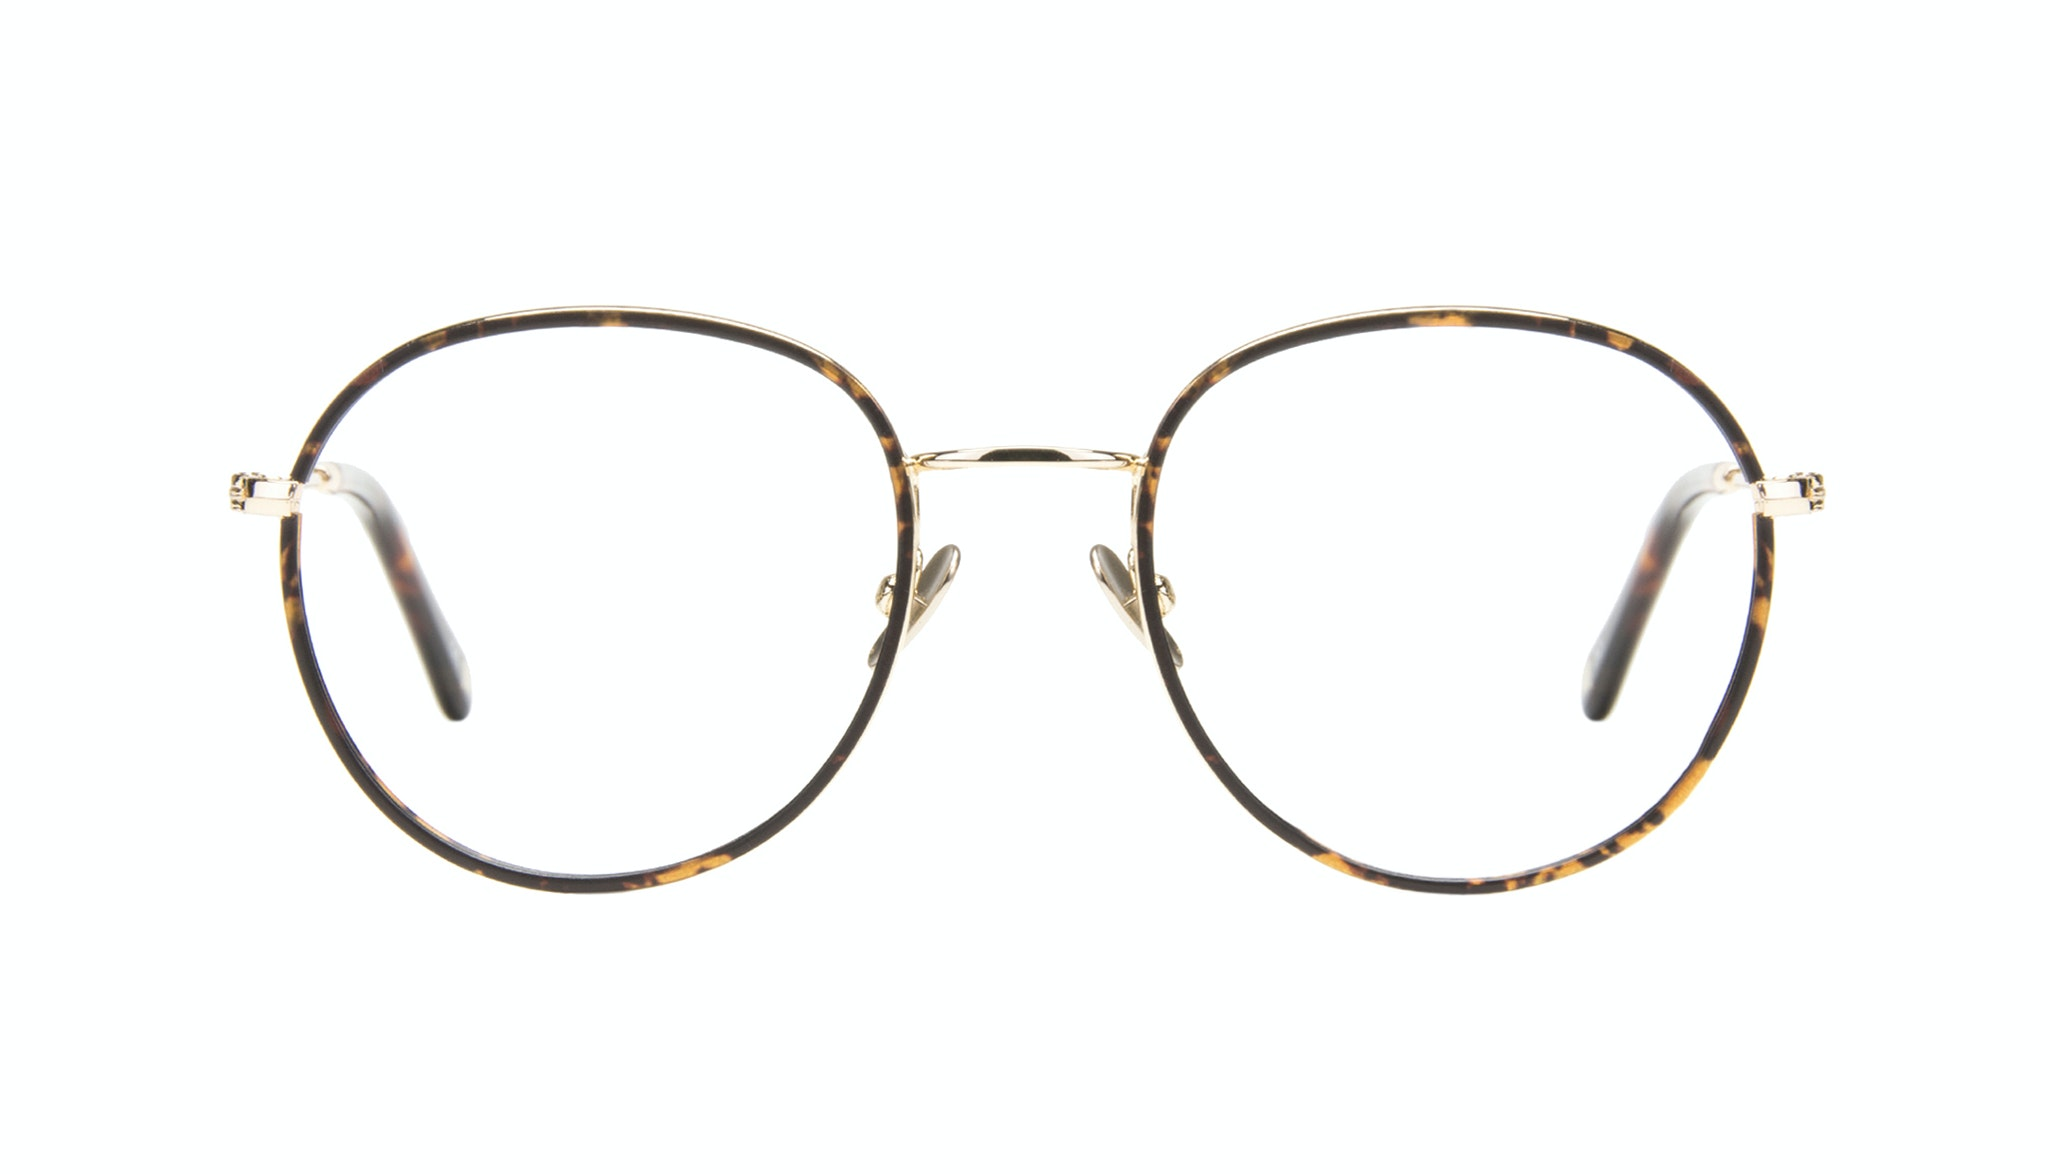 Affordable Fashion Glasses Aviator Round Eyeglasses Women Subrosa Fauve